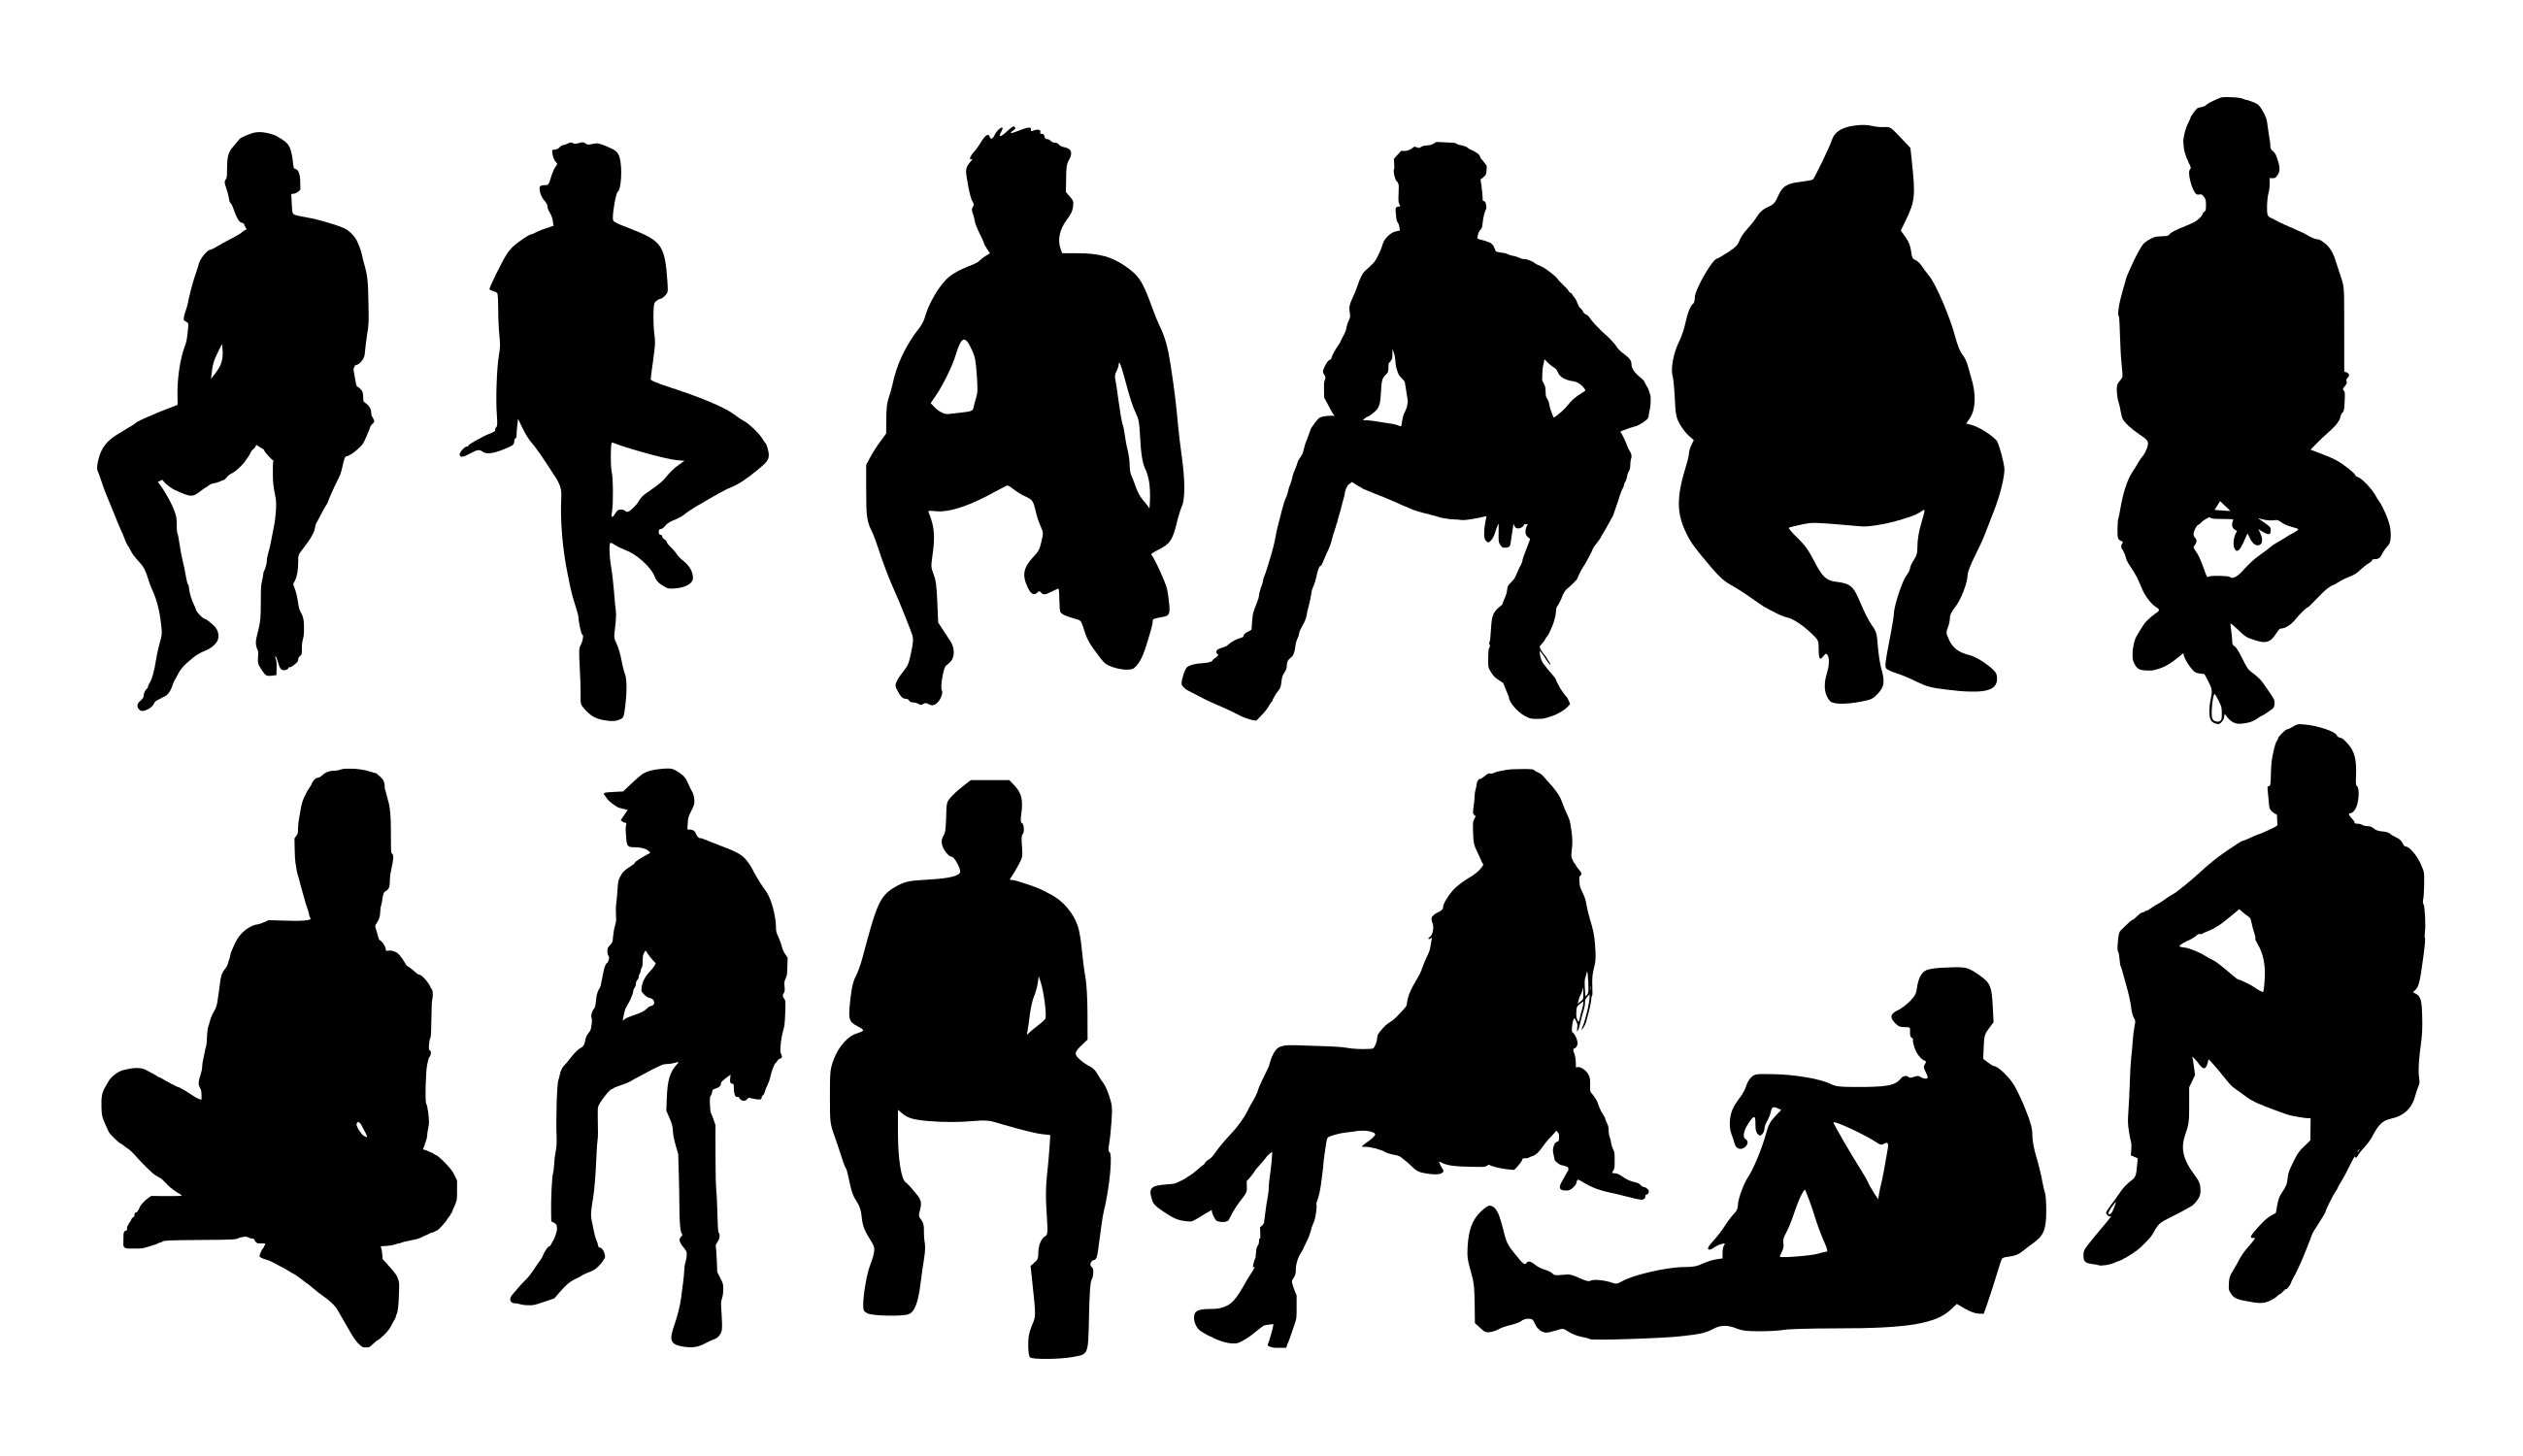 silhouette of a person sitting 12 people sitting silhouette png transp 384564 png silhouette of person sitting a